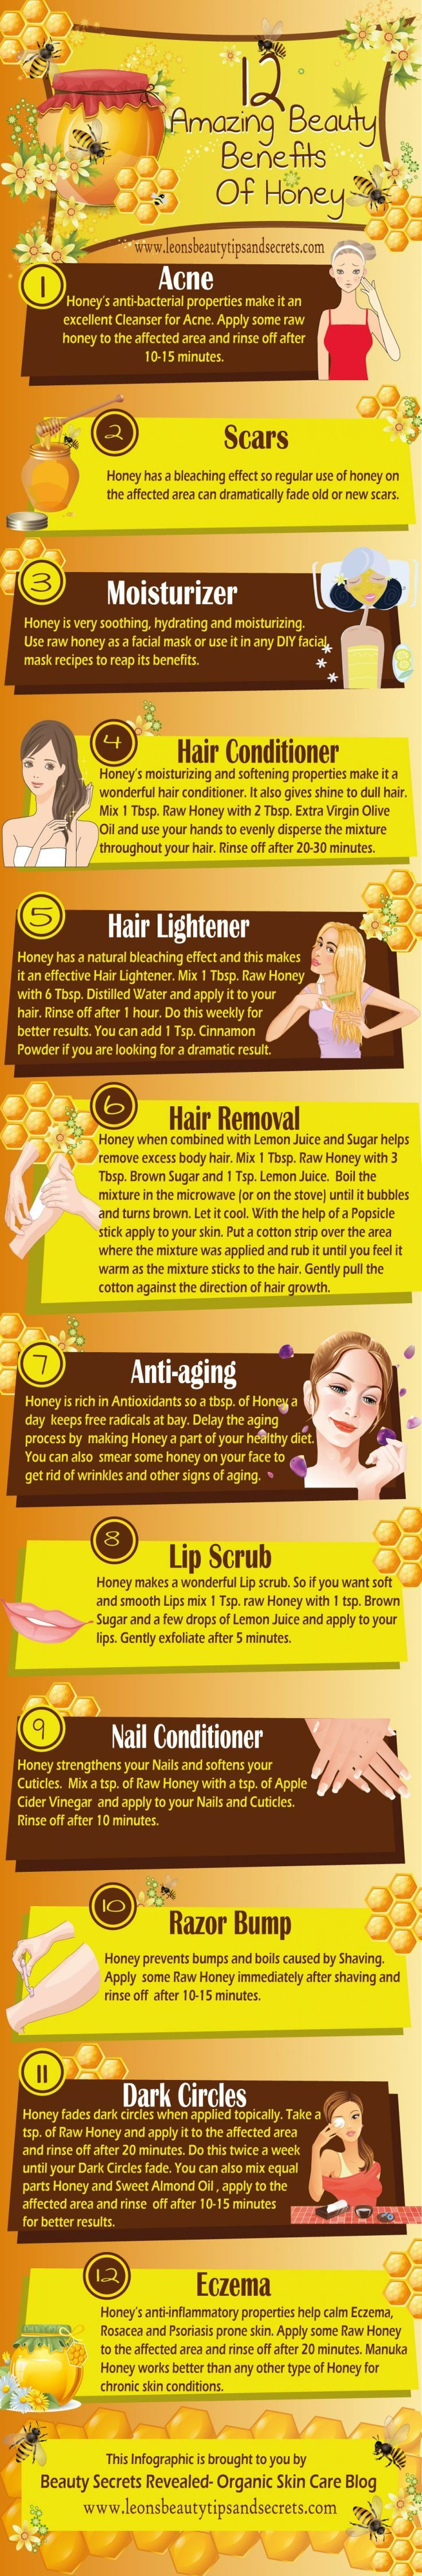 Benefits of Honey - 51 Amazing Health and Beauty Benefits [Infographic Text]